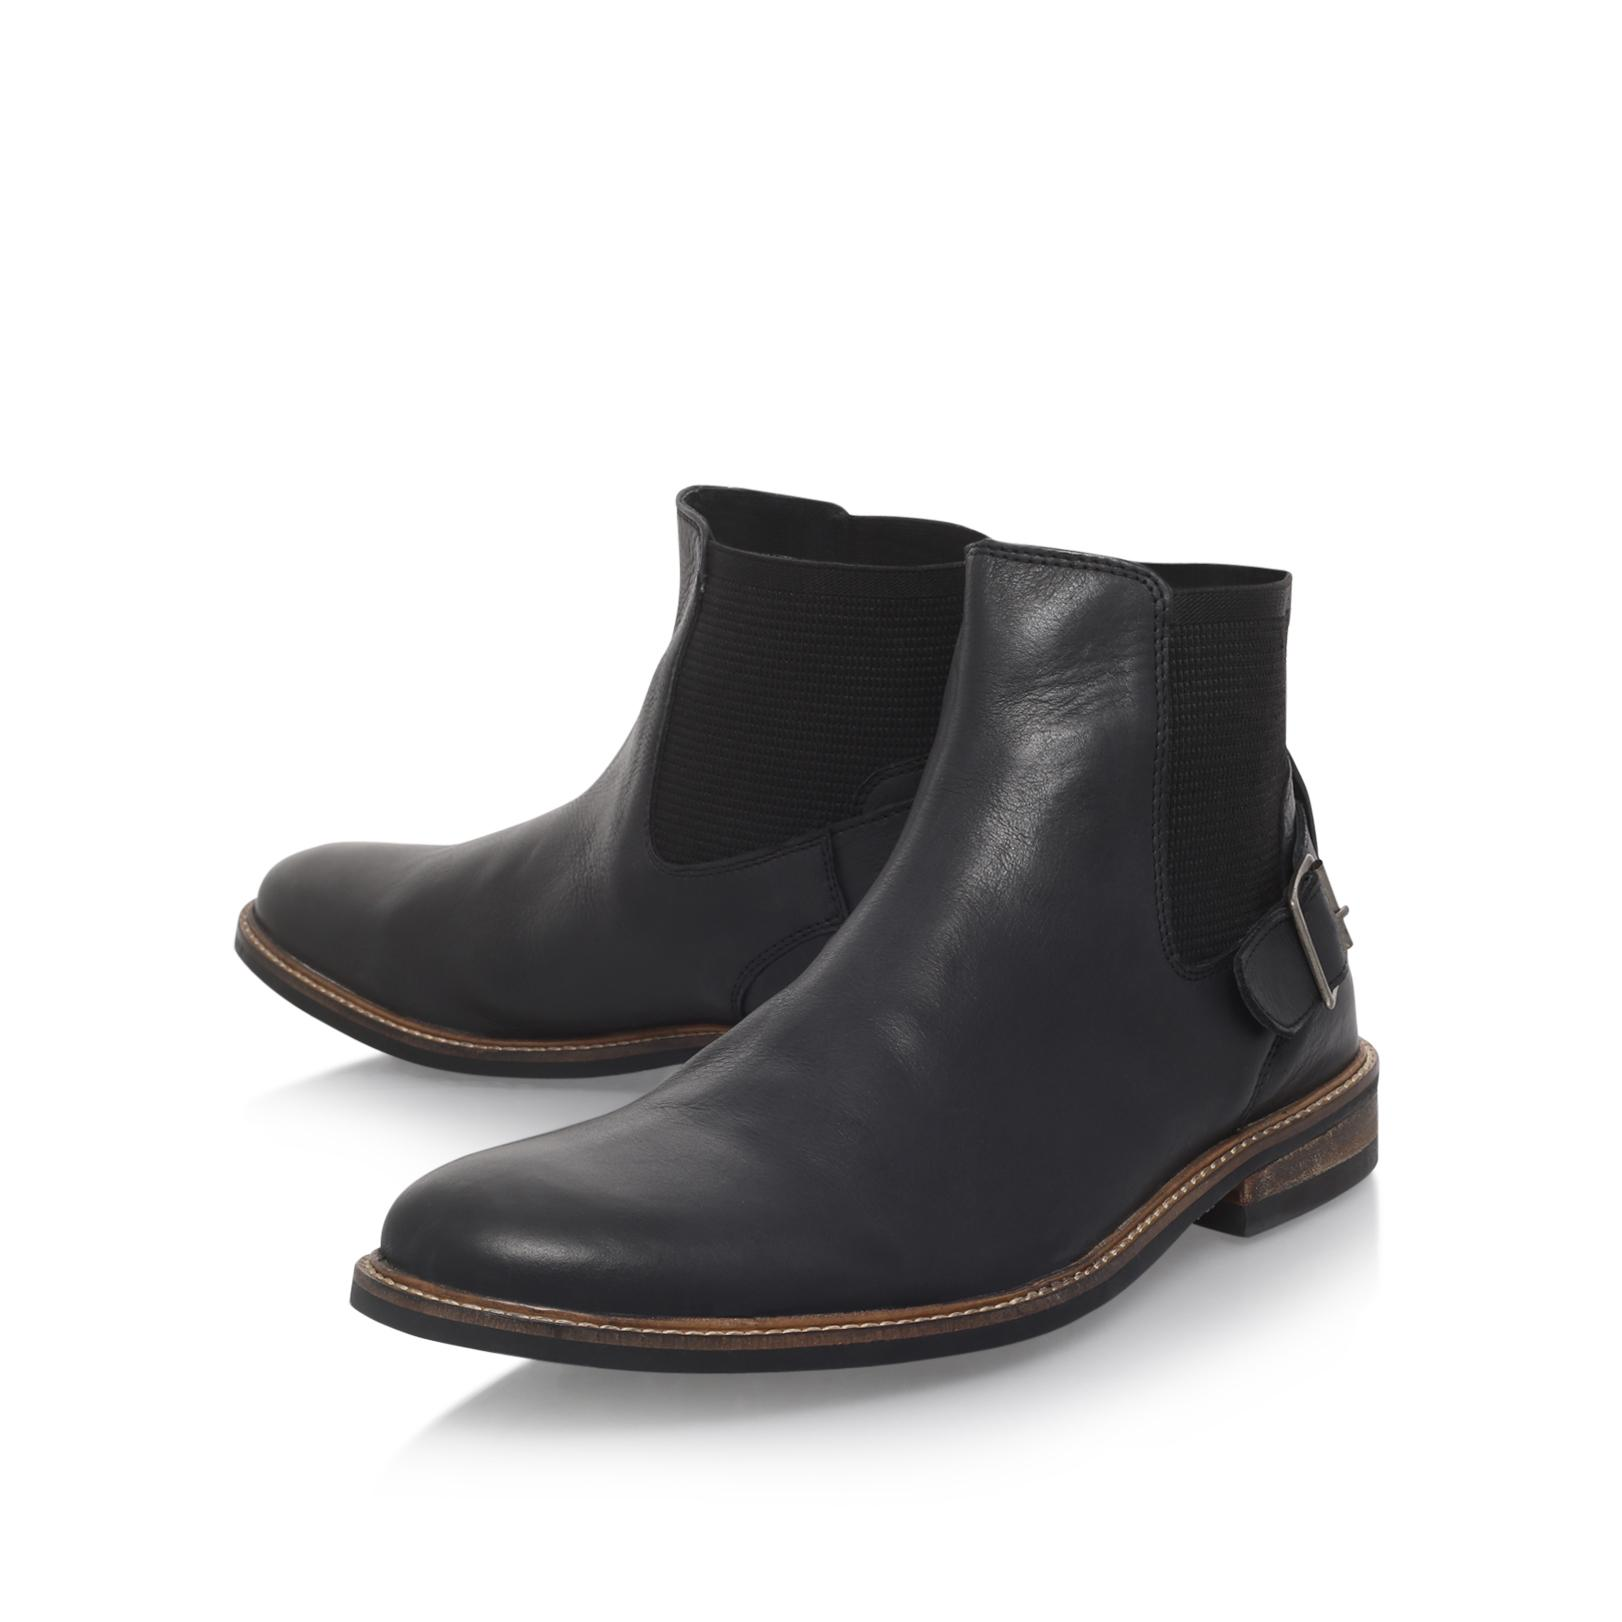 Paolo Vandini Pentagon Black Leather Flat Boots for Men